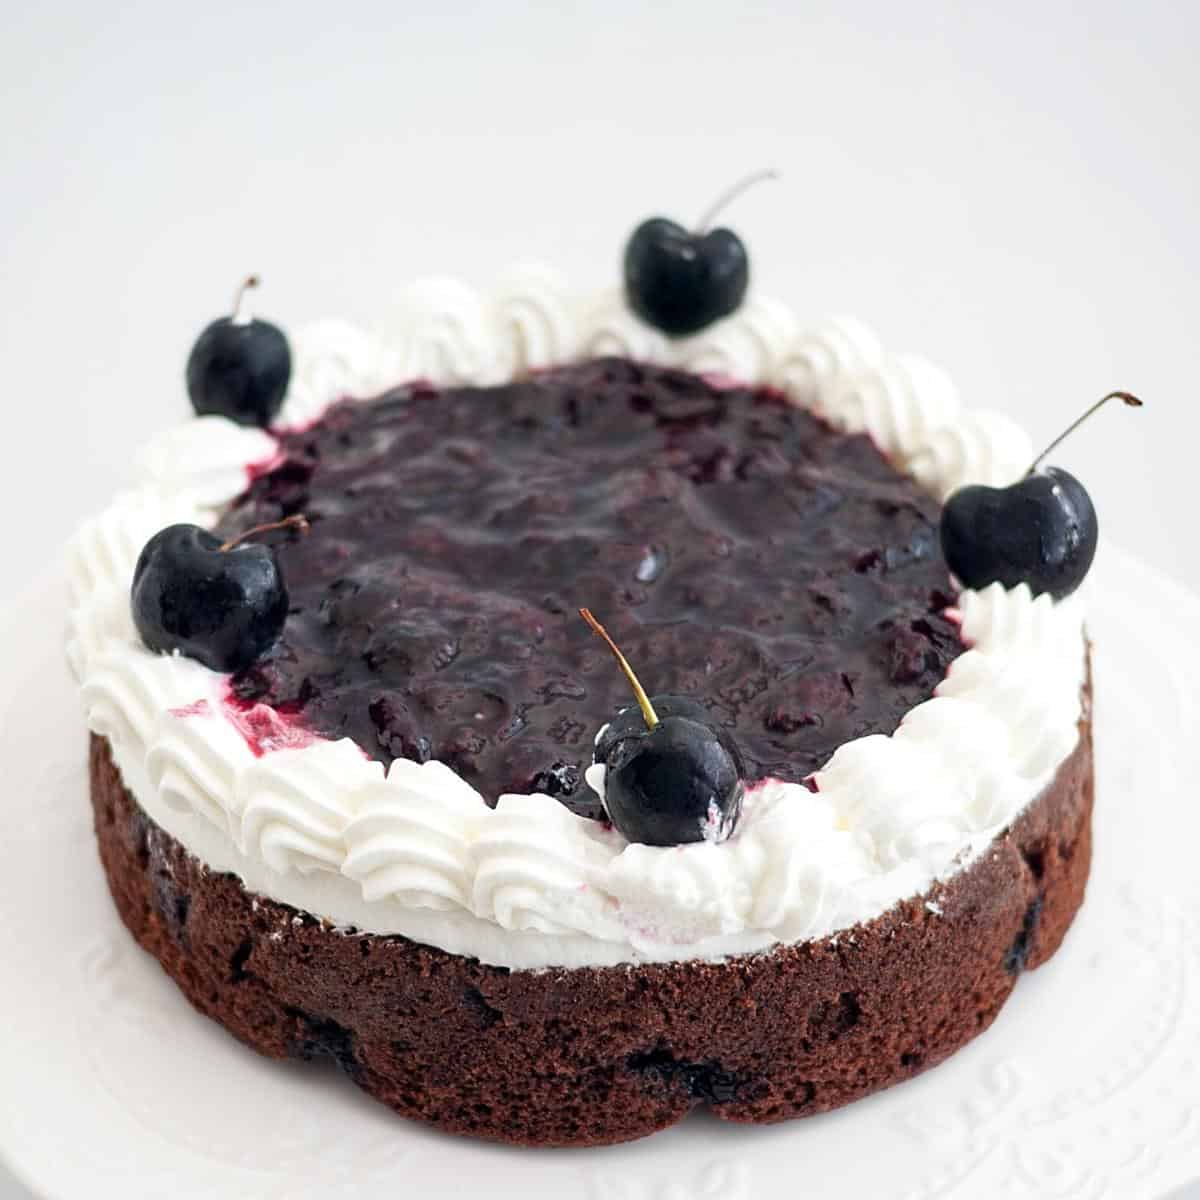 A chocolate cake with cherry filling and whipped cream.